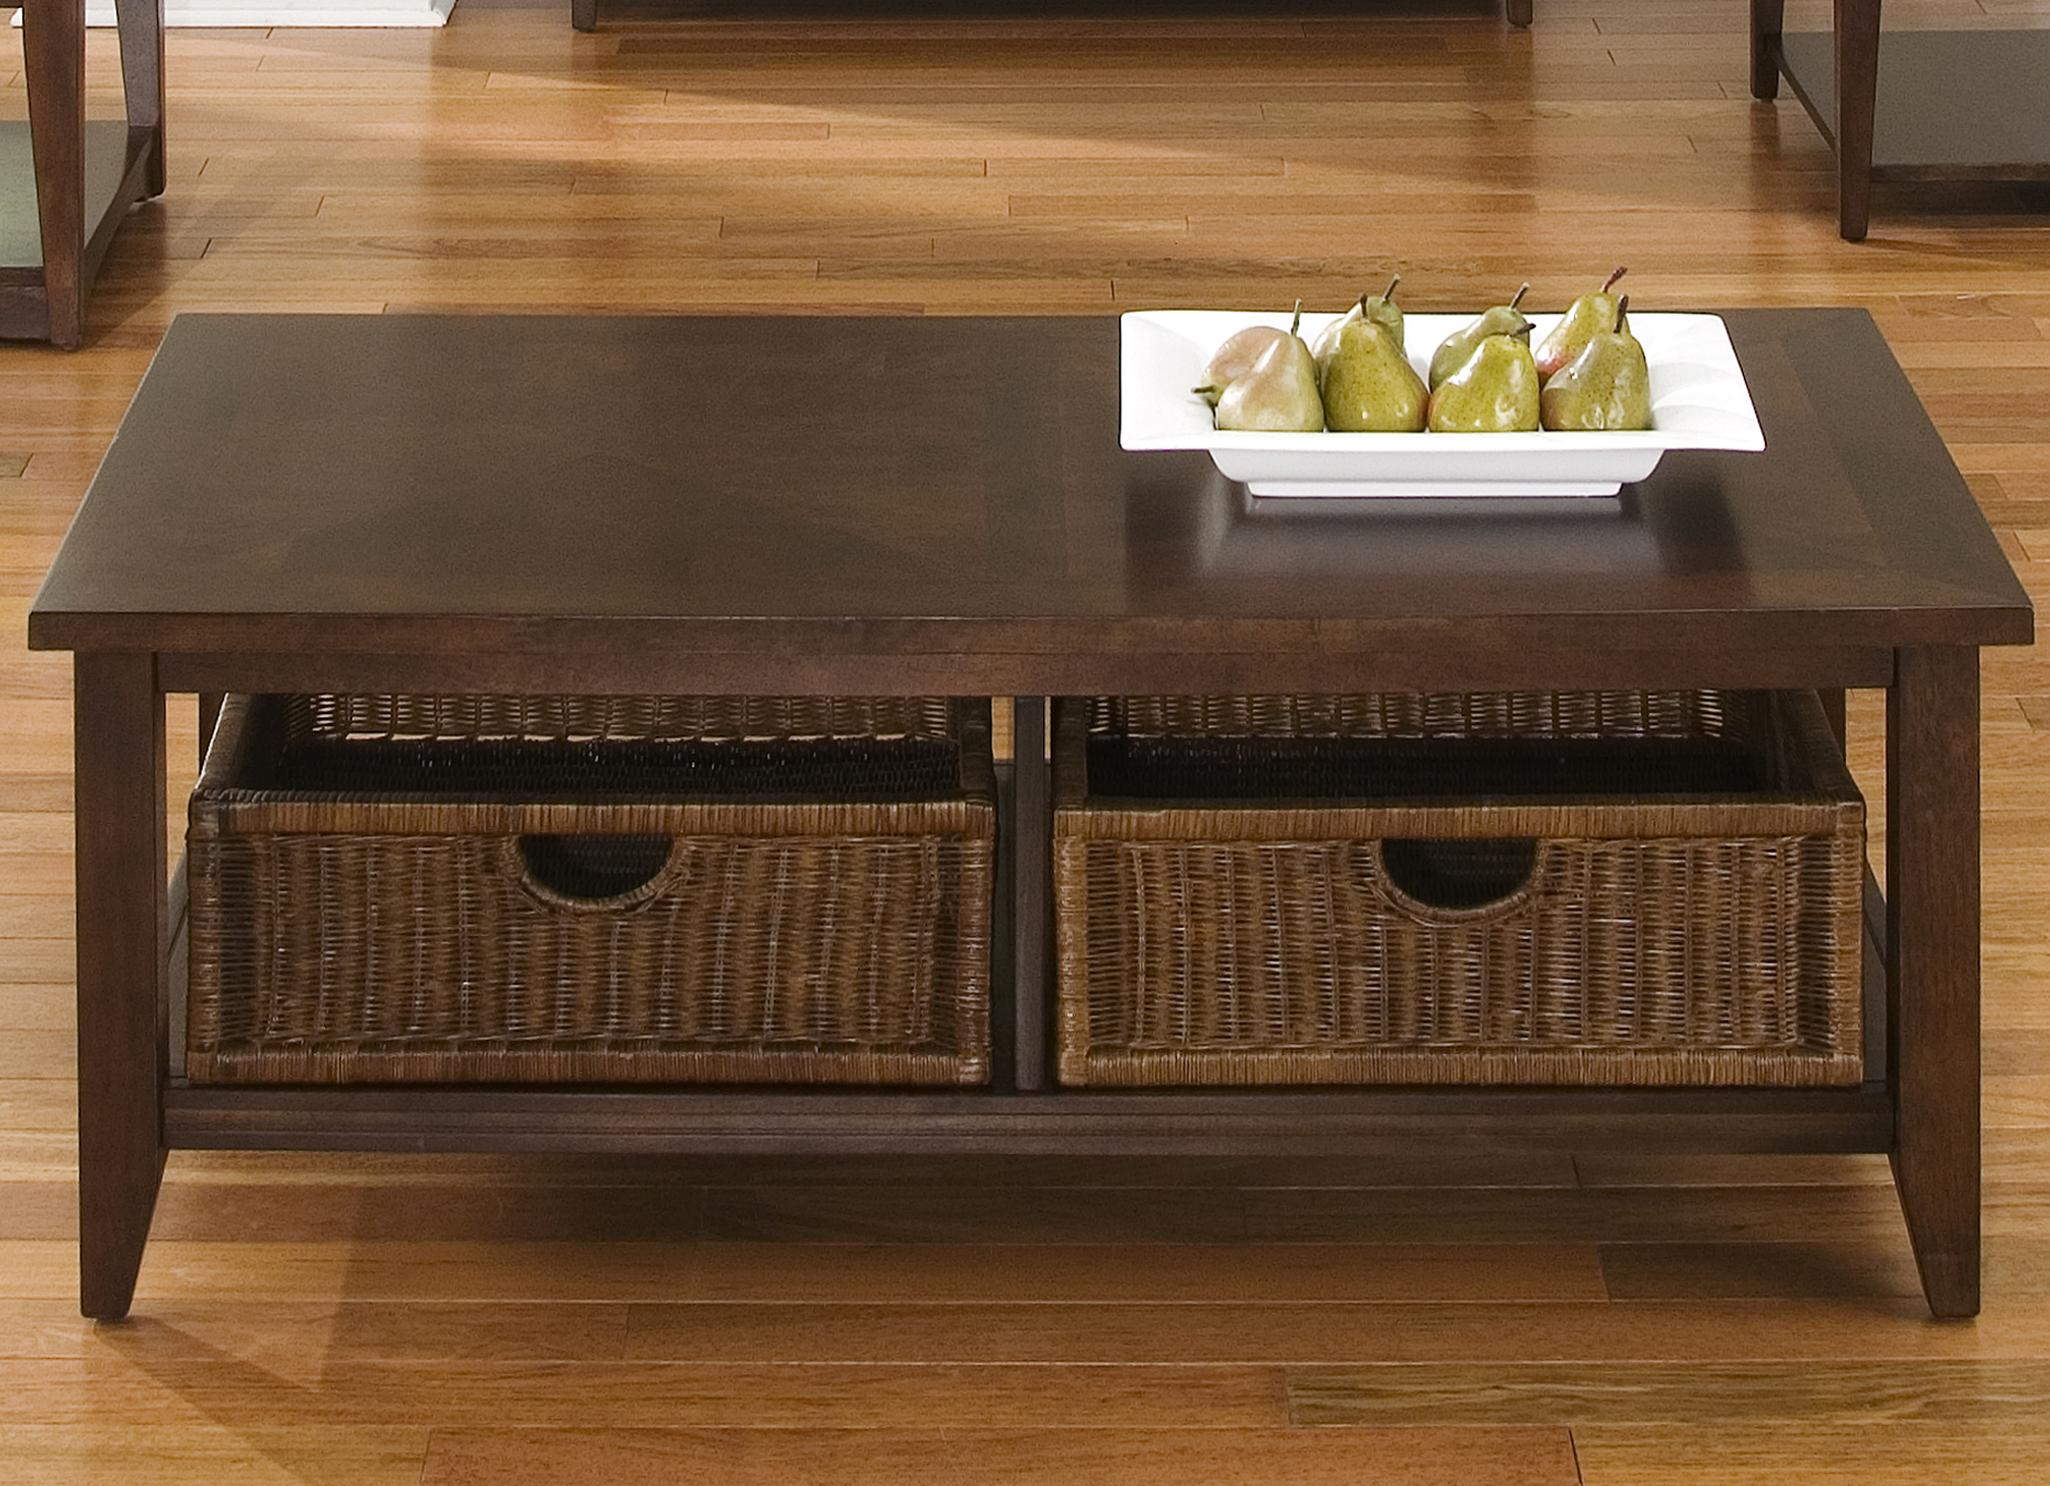 Coffee table w 2 basket drawers by liberty furniture wolf and gardiner wolf furniture Coffee table baskets